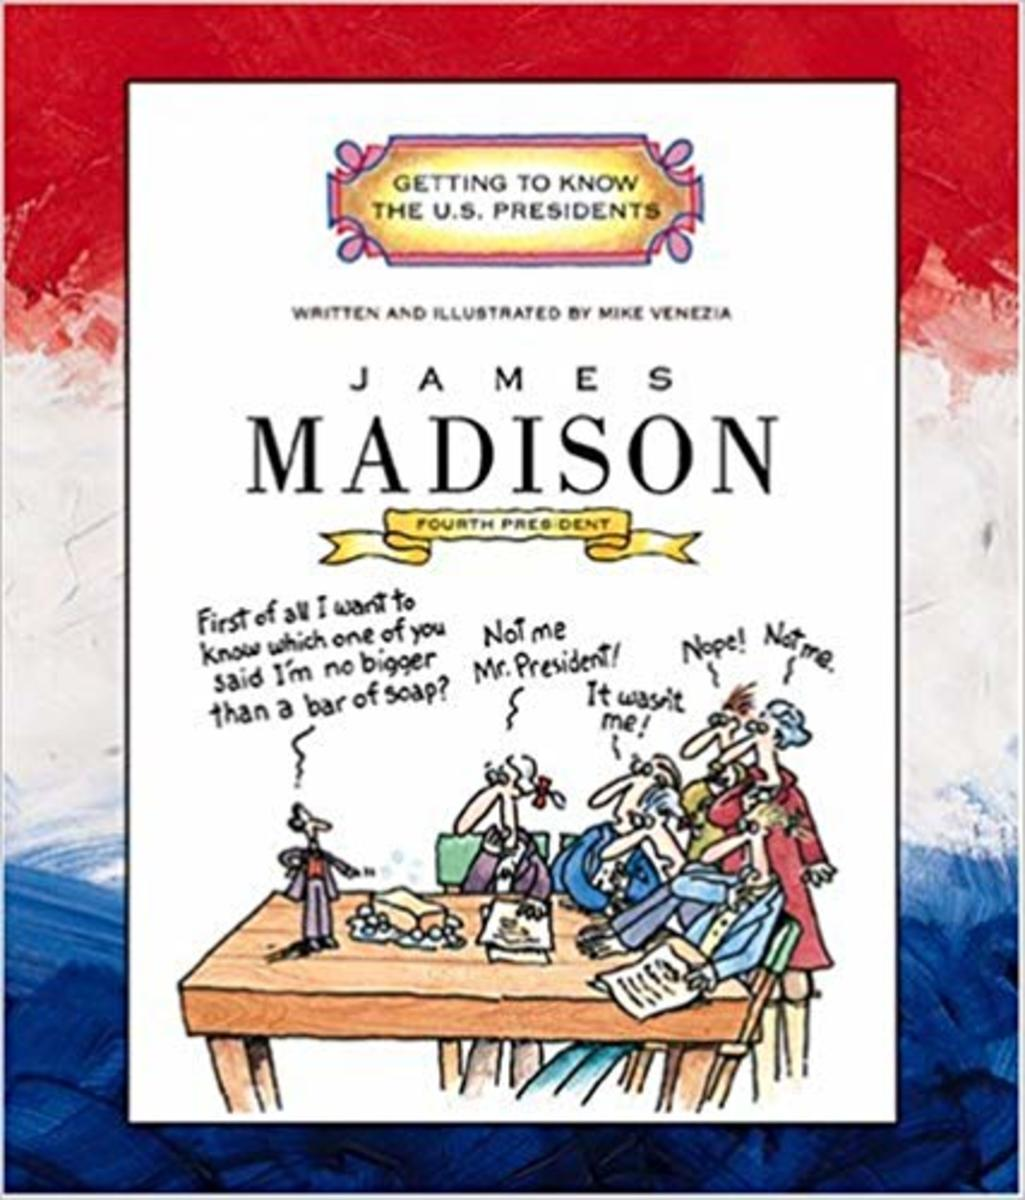 James Madison: Fourth President 1809-1817 (Getting to Know the US Presidents) by Mike Venezia